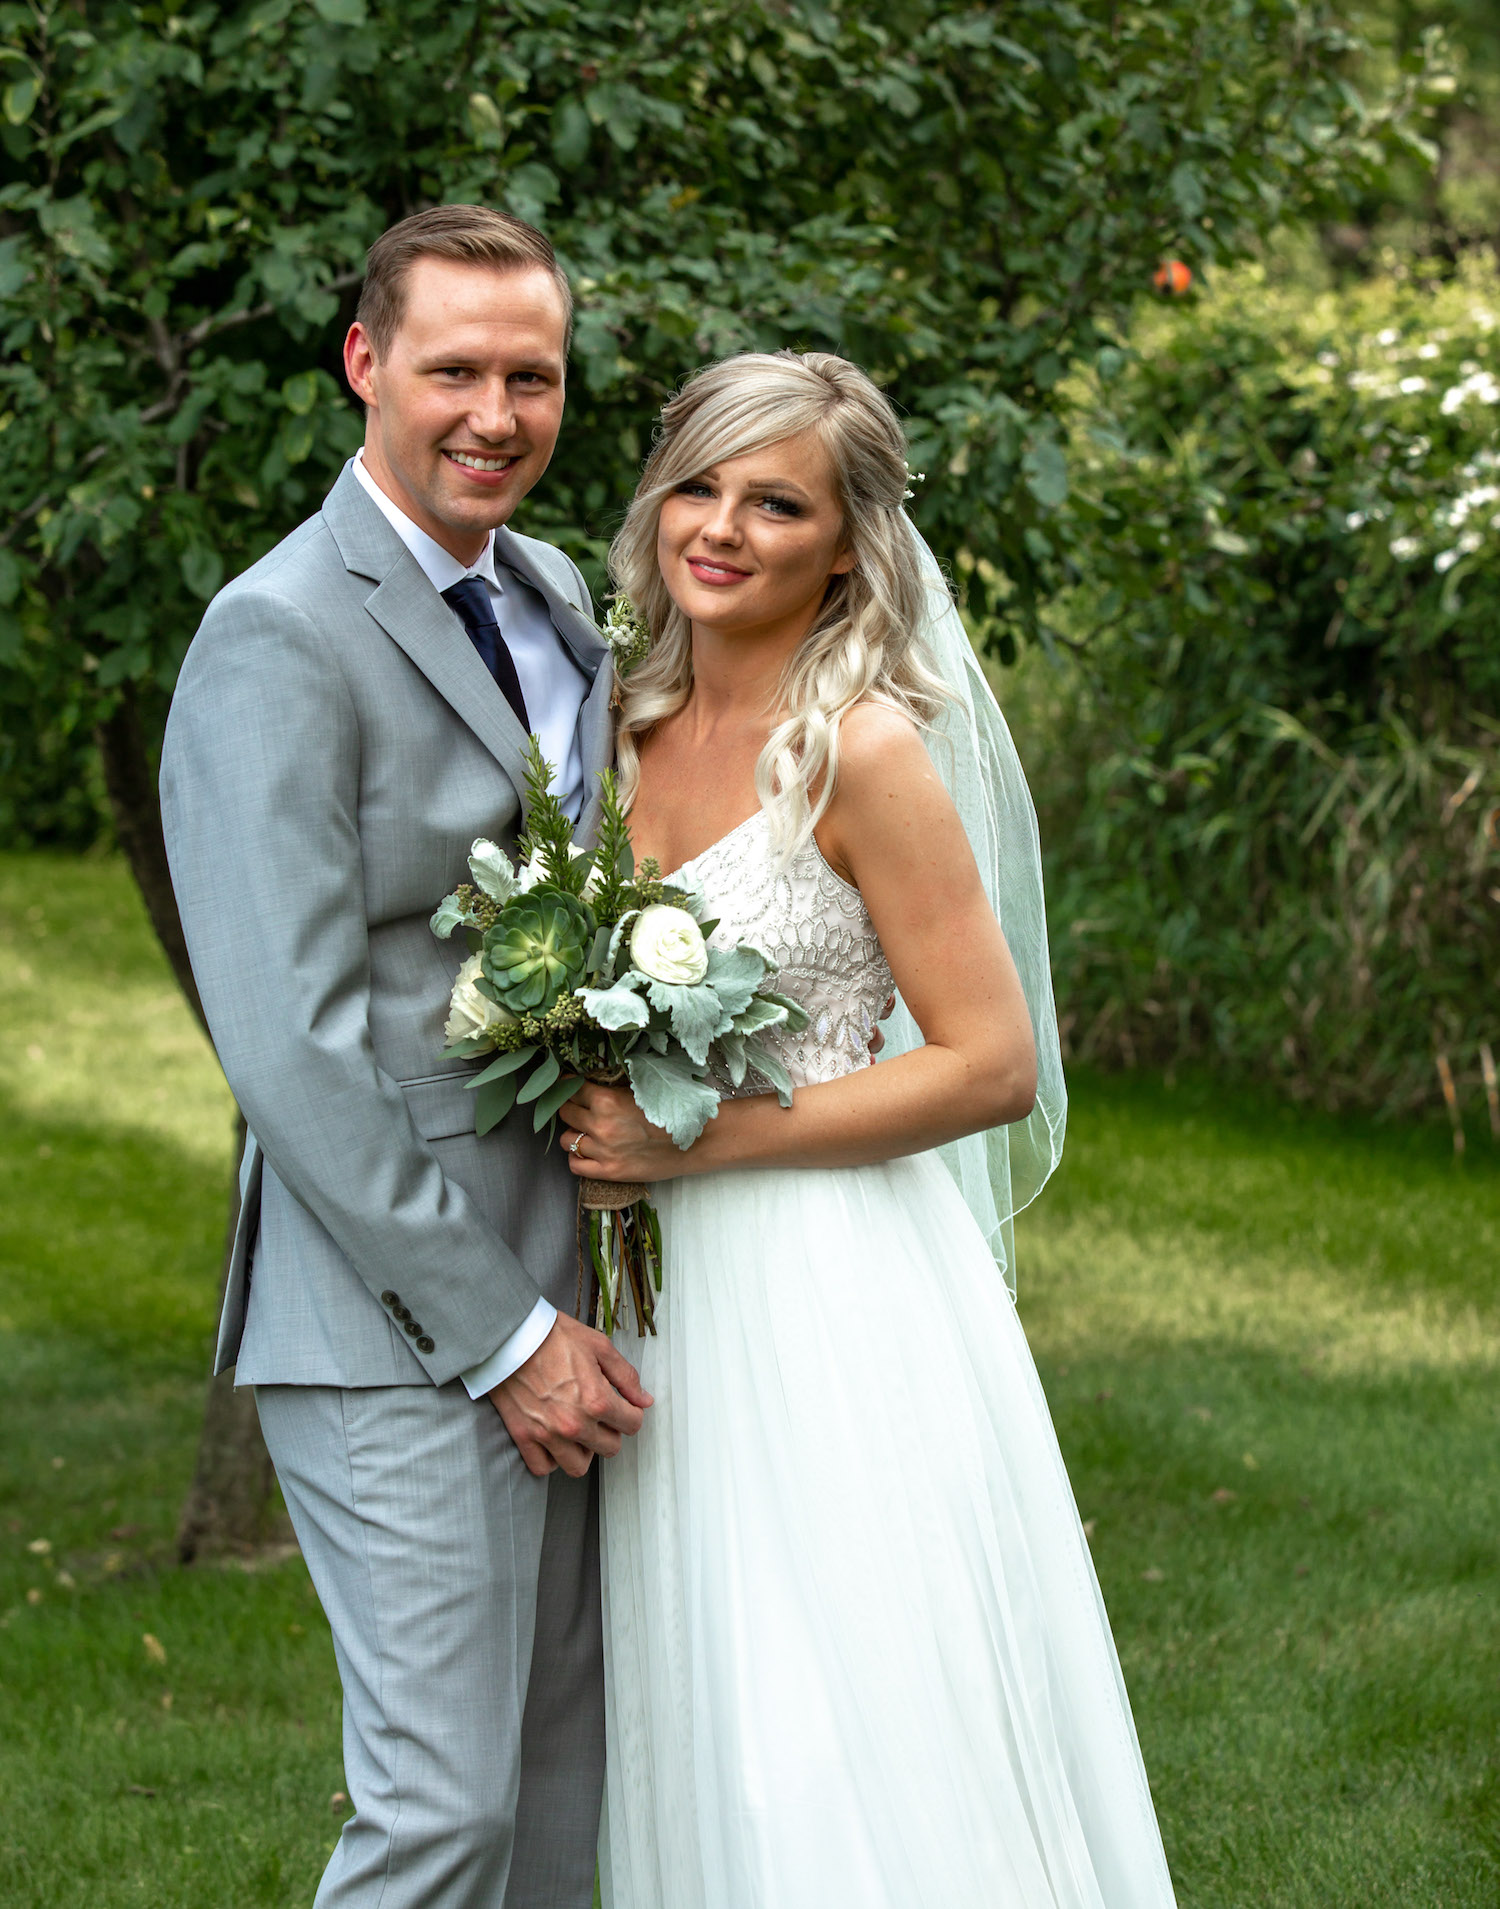 Cindyrellas Garden outdoor wedding ceremony by a private lake with wooded backdrops, simple bouquet